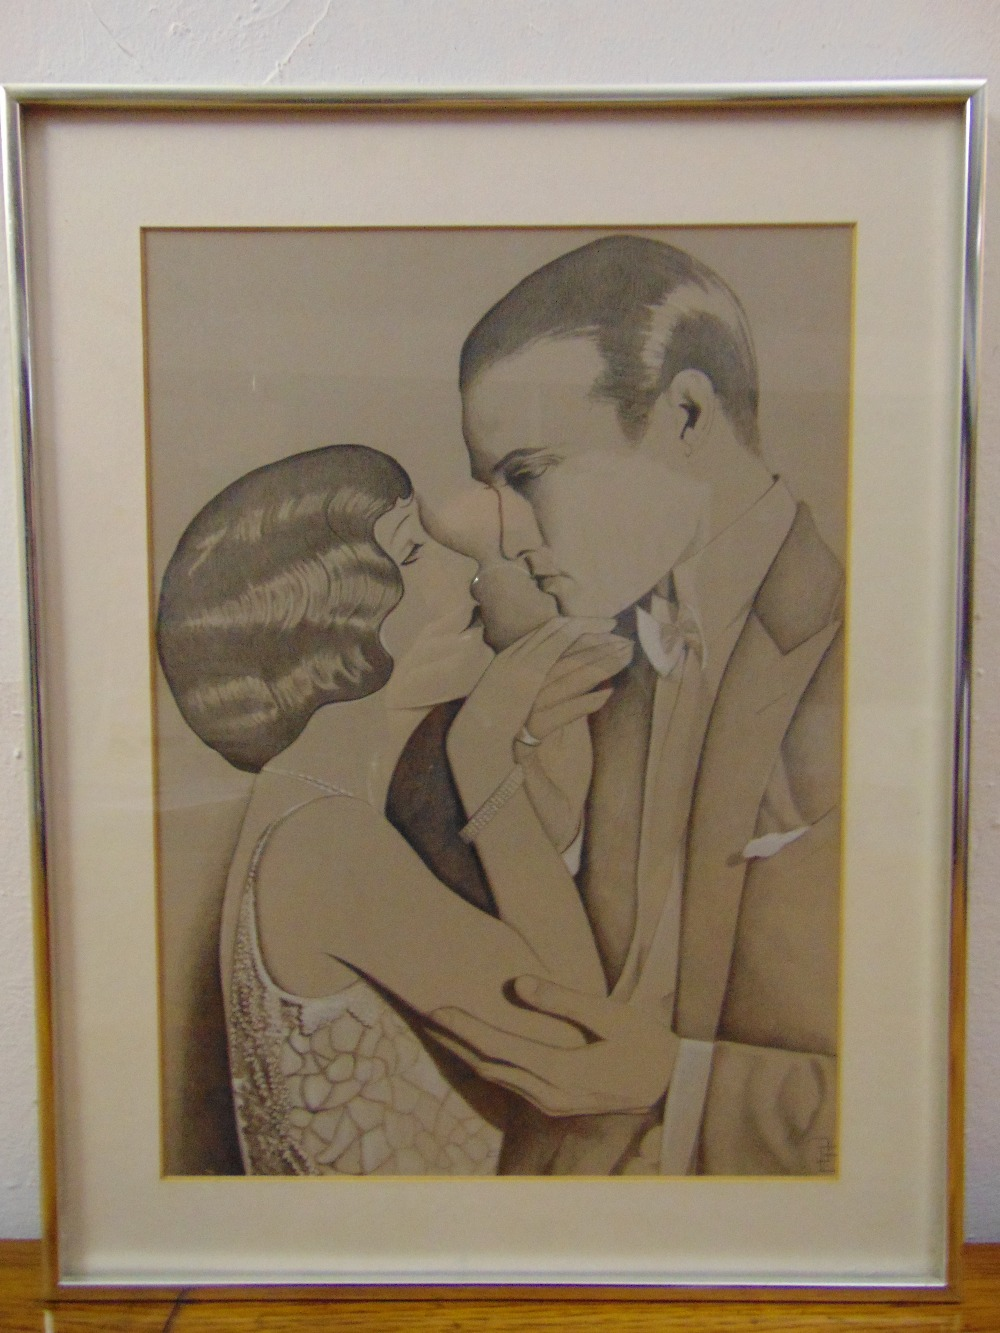 Lot 80 - A framed and glazed monochromatic drawing of a romantic couple, monogrammed bottom right, 42 x 30cm